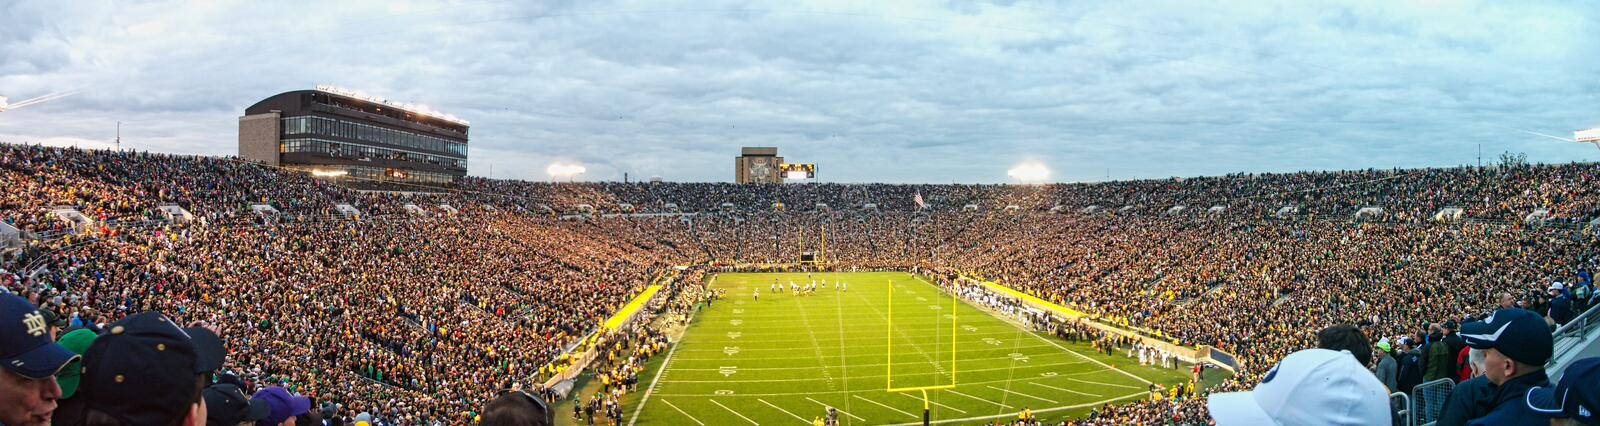 a stadium full of people royalty free stock images